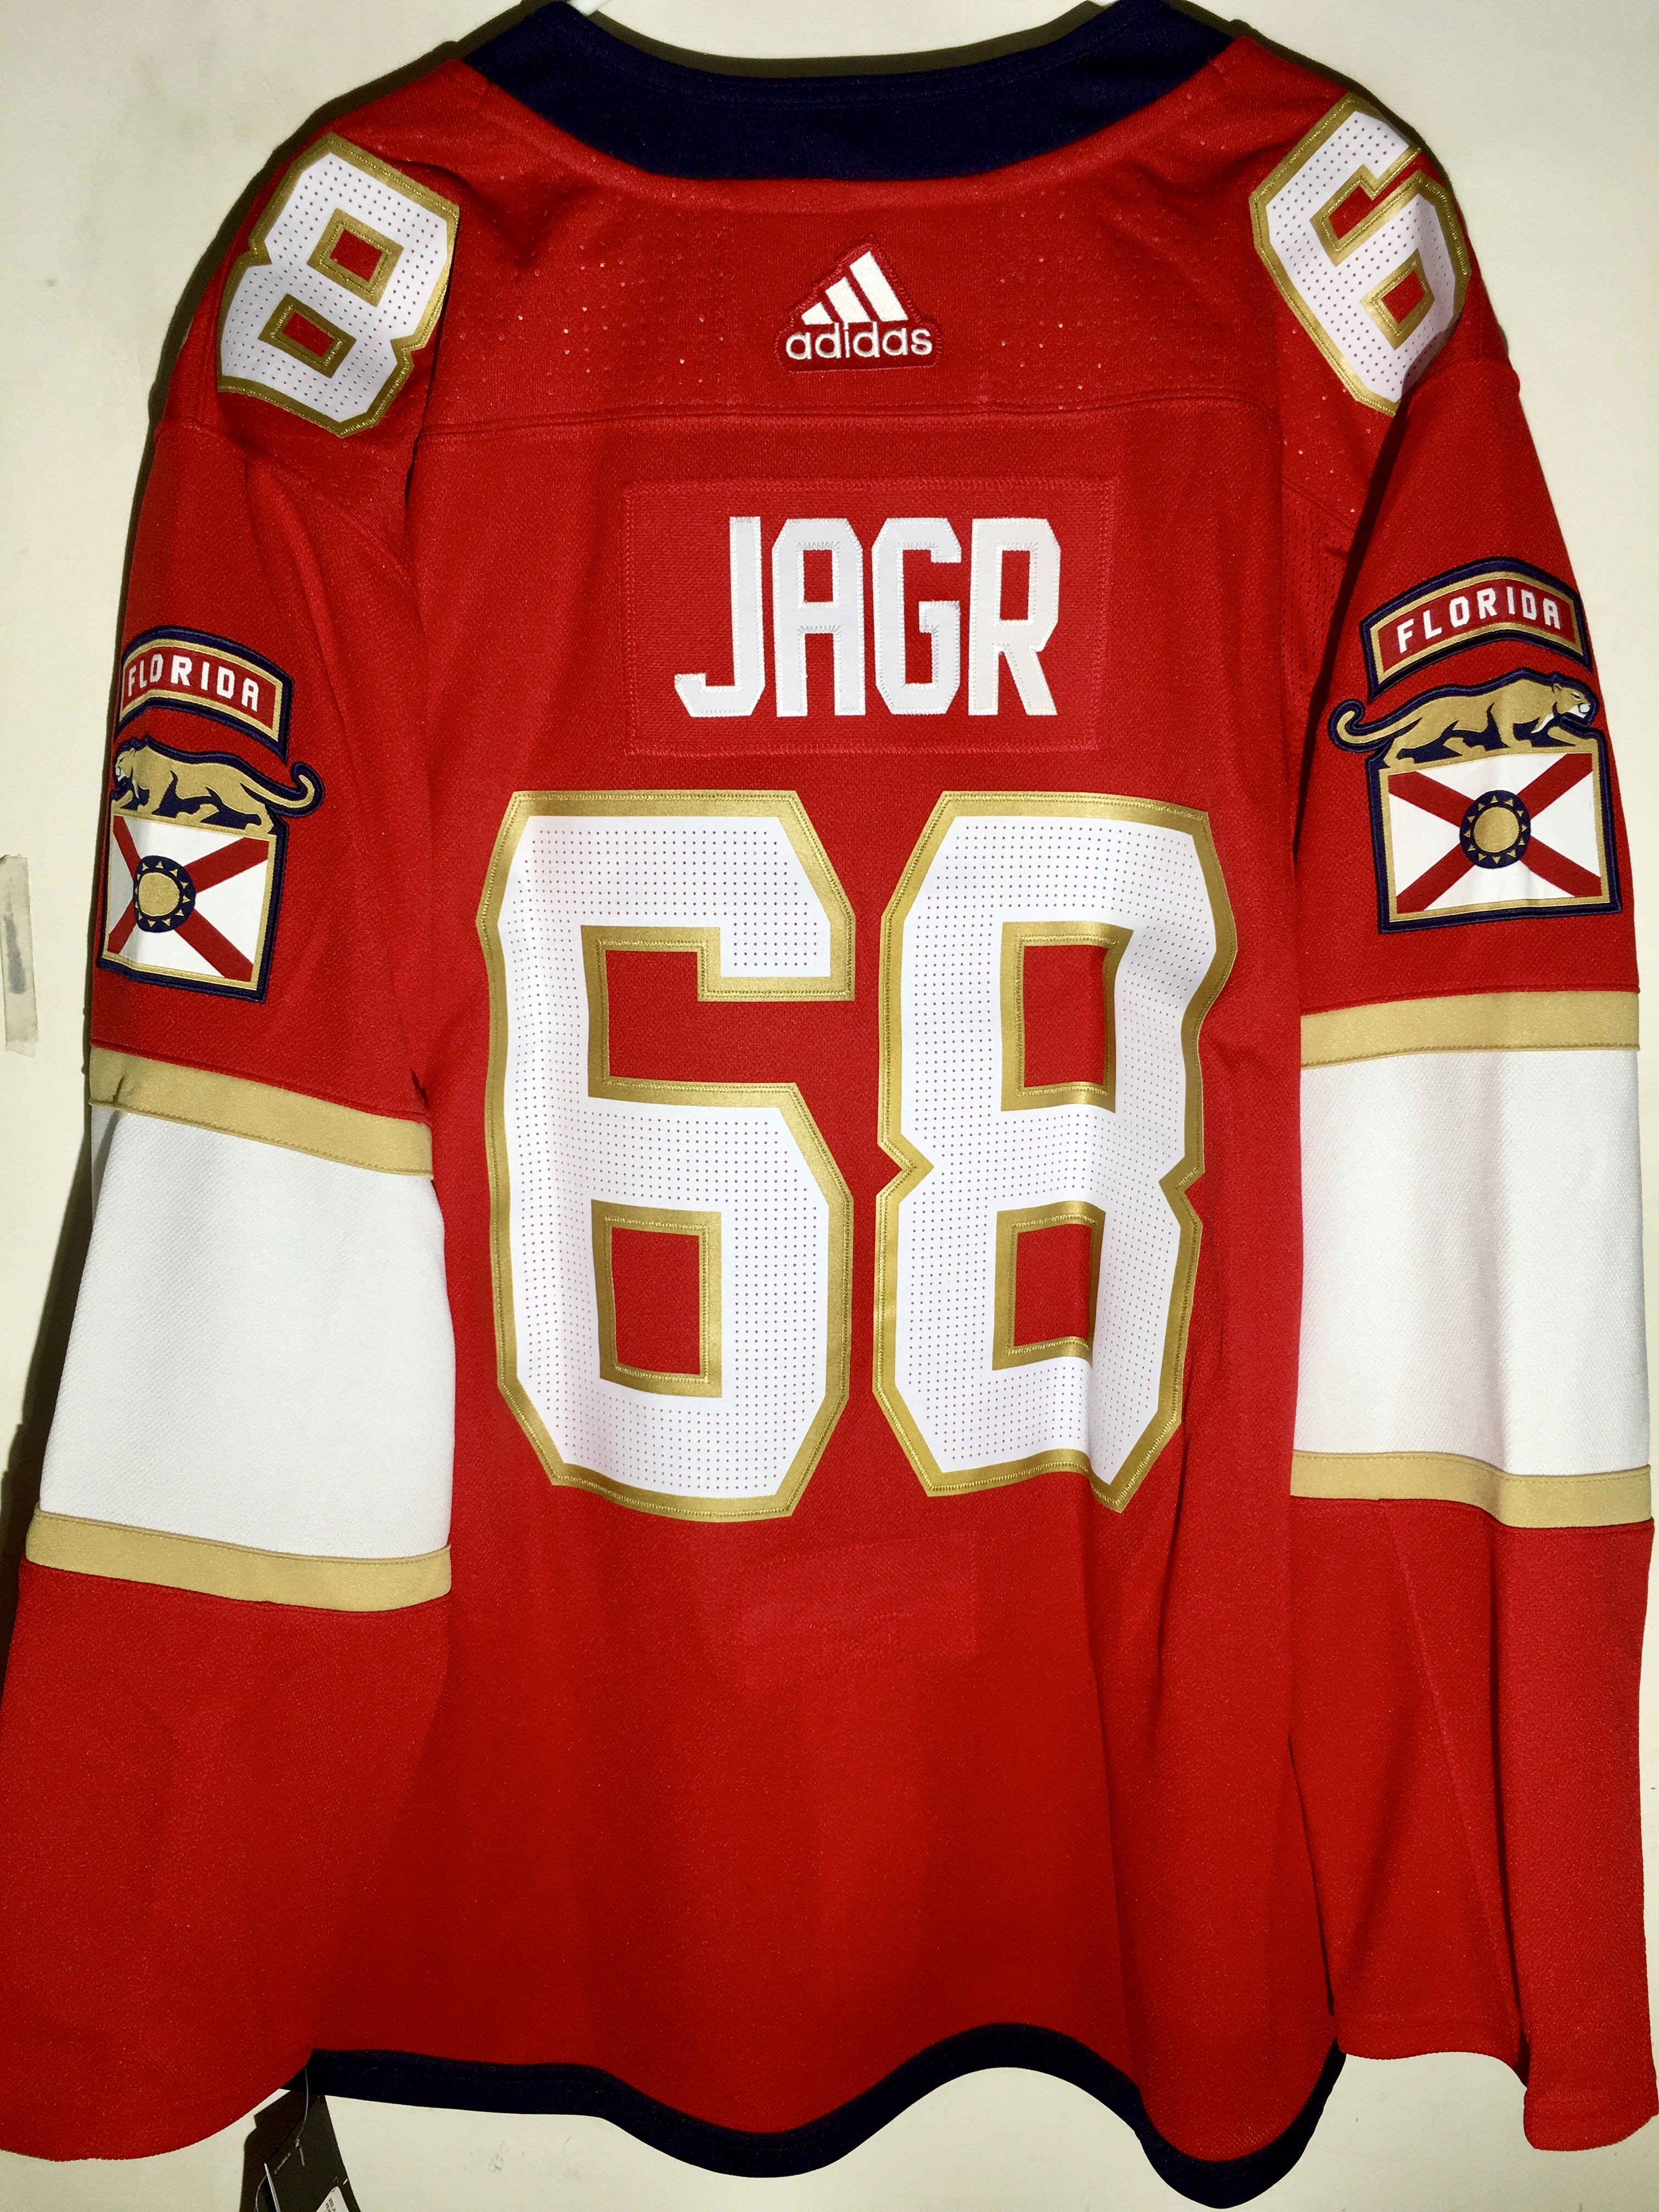 6e0c825f74f adidas Authentic NHL Jersey Florida Panthers Jaromir Jagr Red sz 42 ...